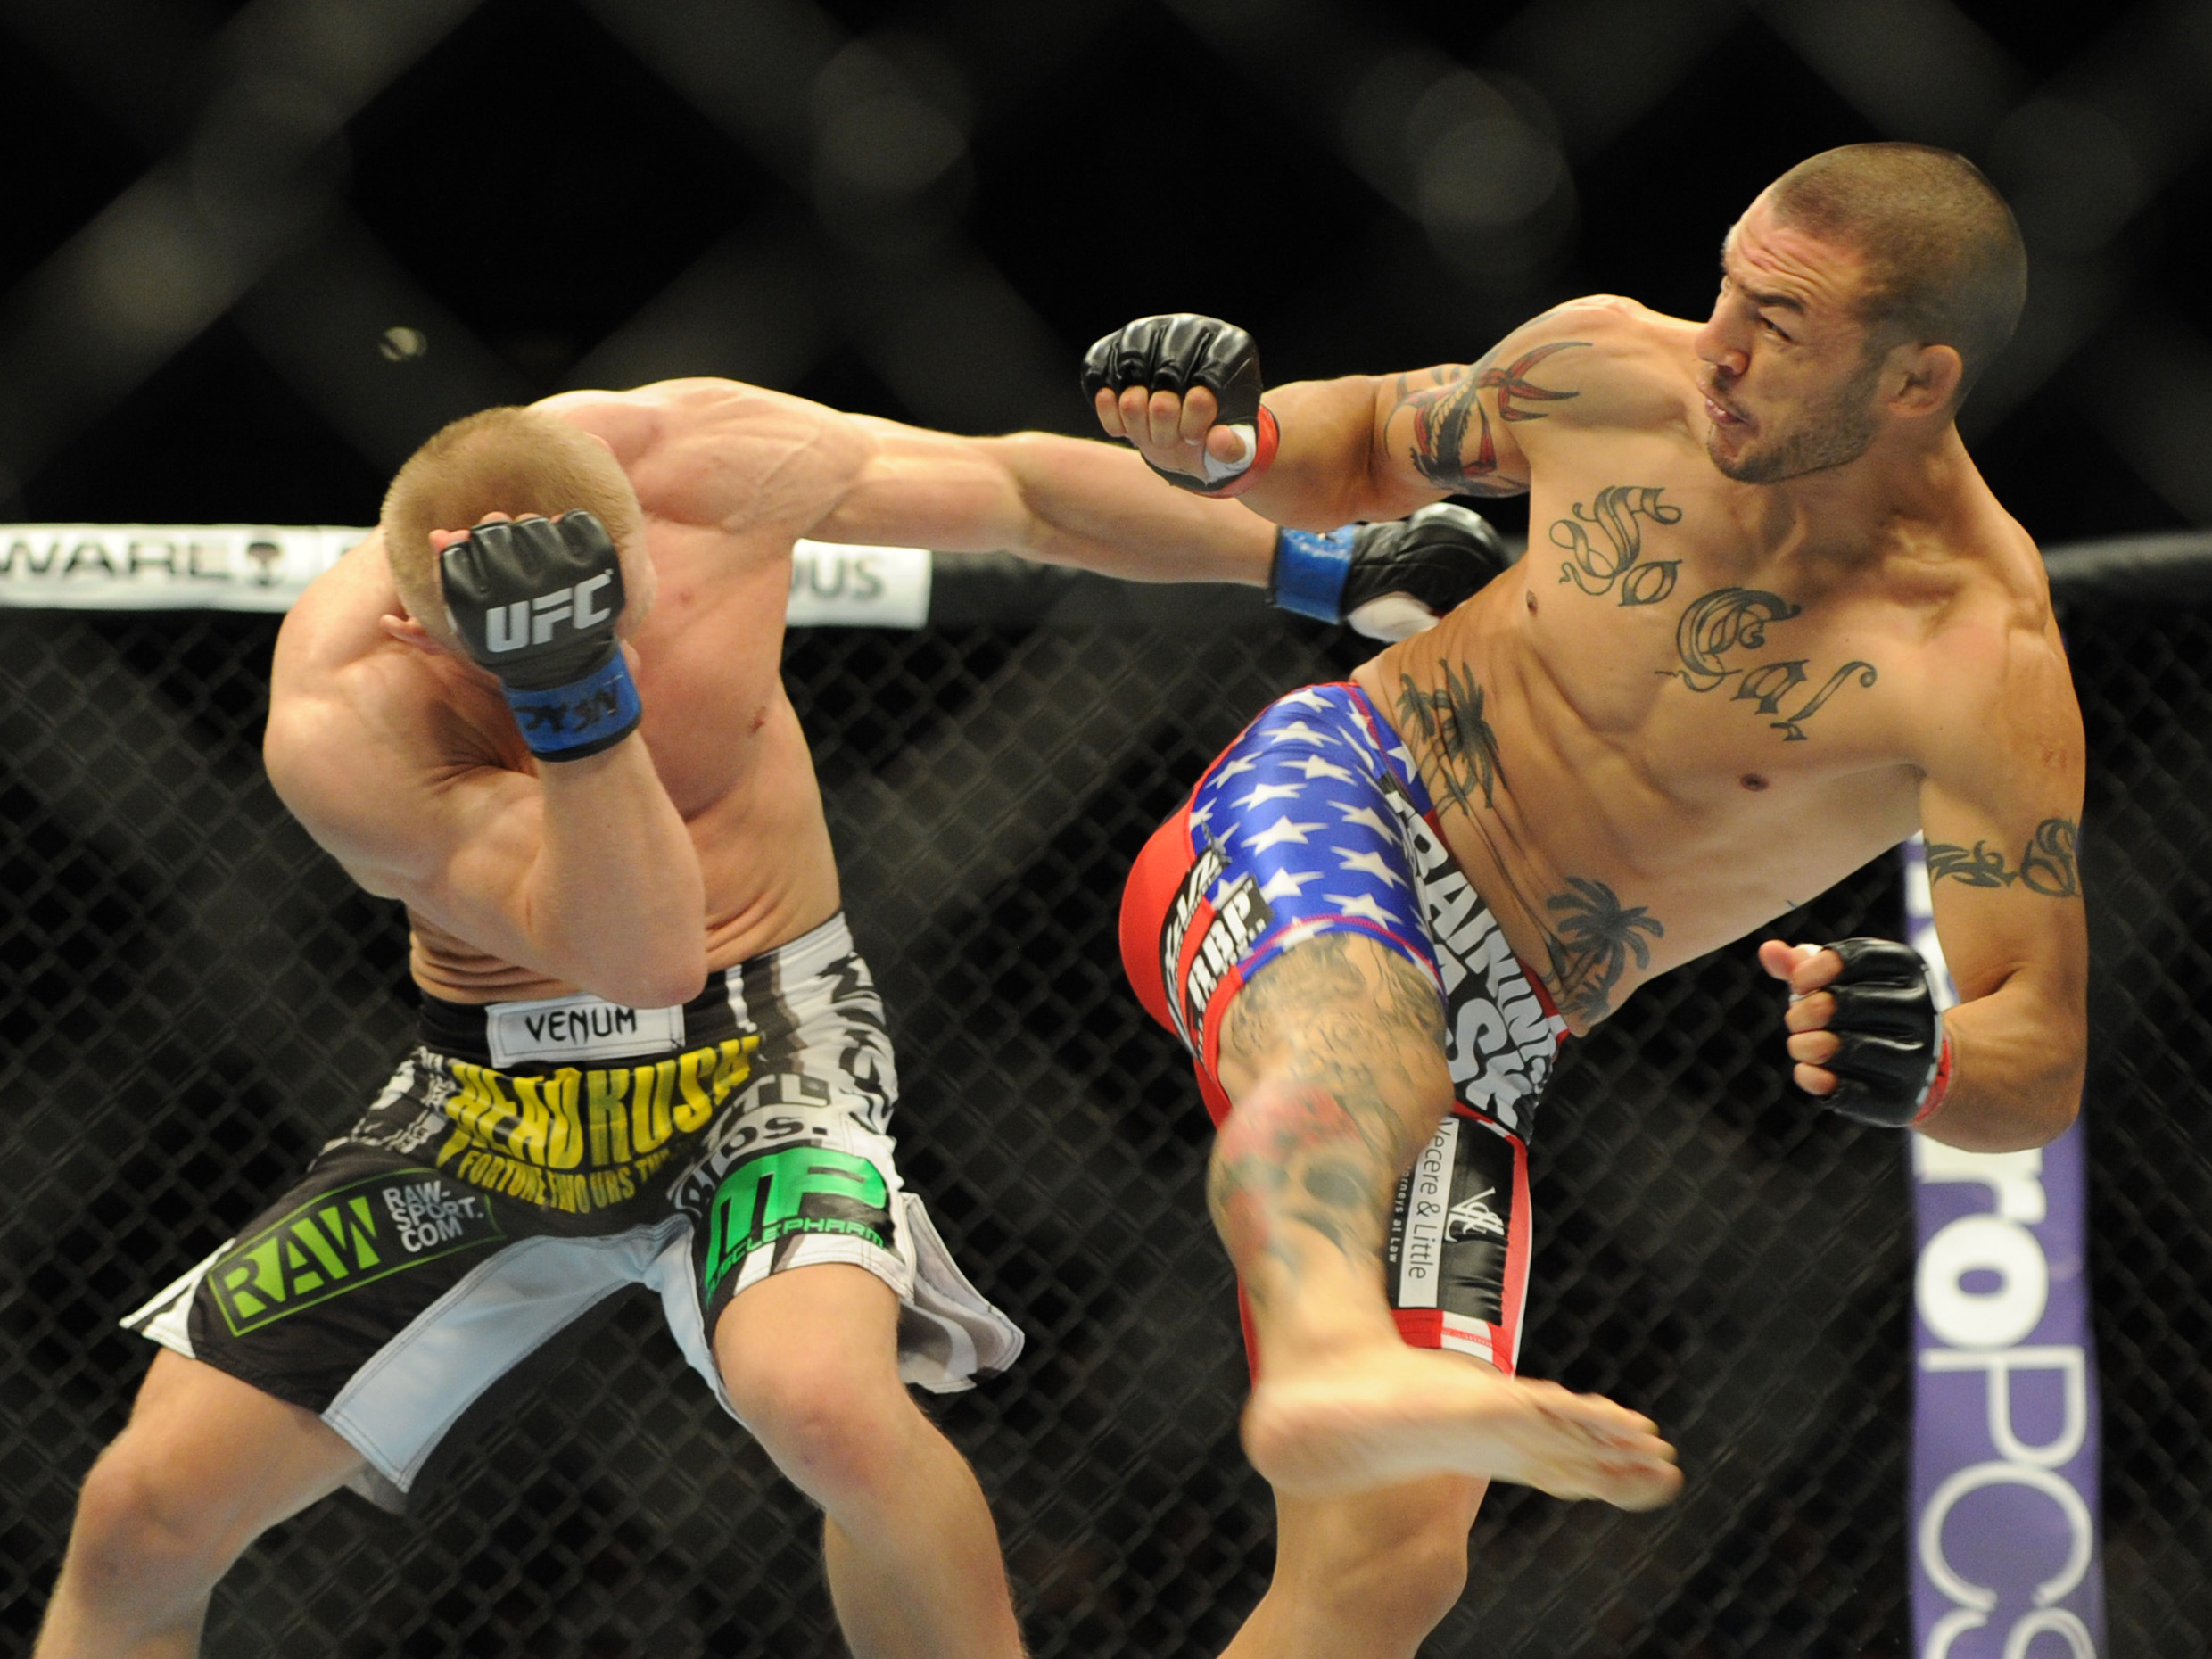 Cub Swanson kicks at Dennis Siver during their featherweight fight. (USA Today)